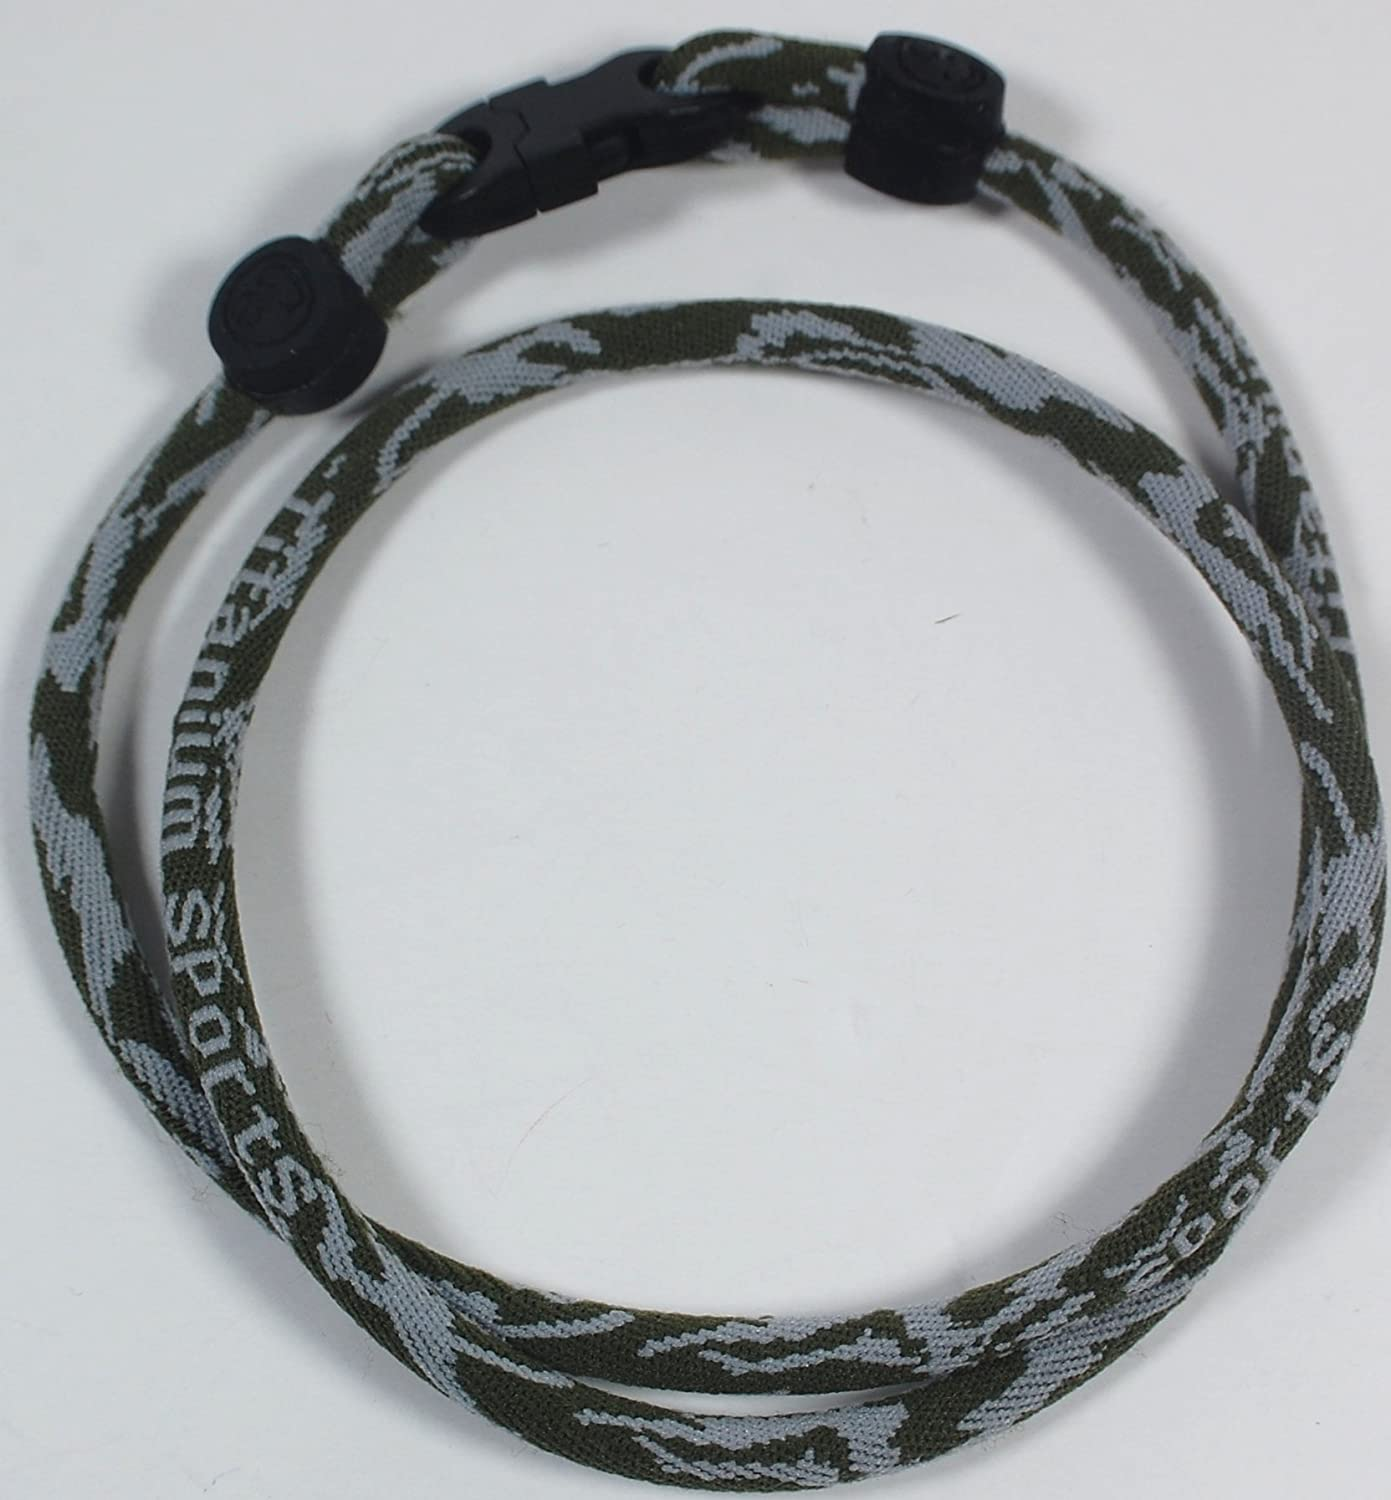 NEW! 22 Large Camo Single Tornado Ionic Necklace With Case extreme sports surf